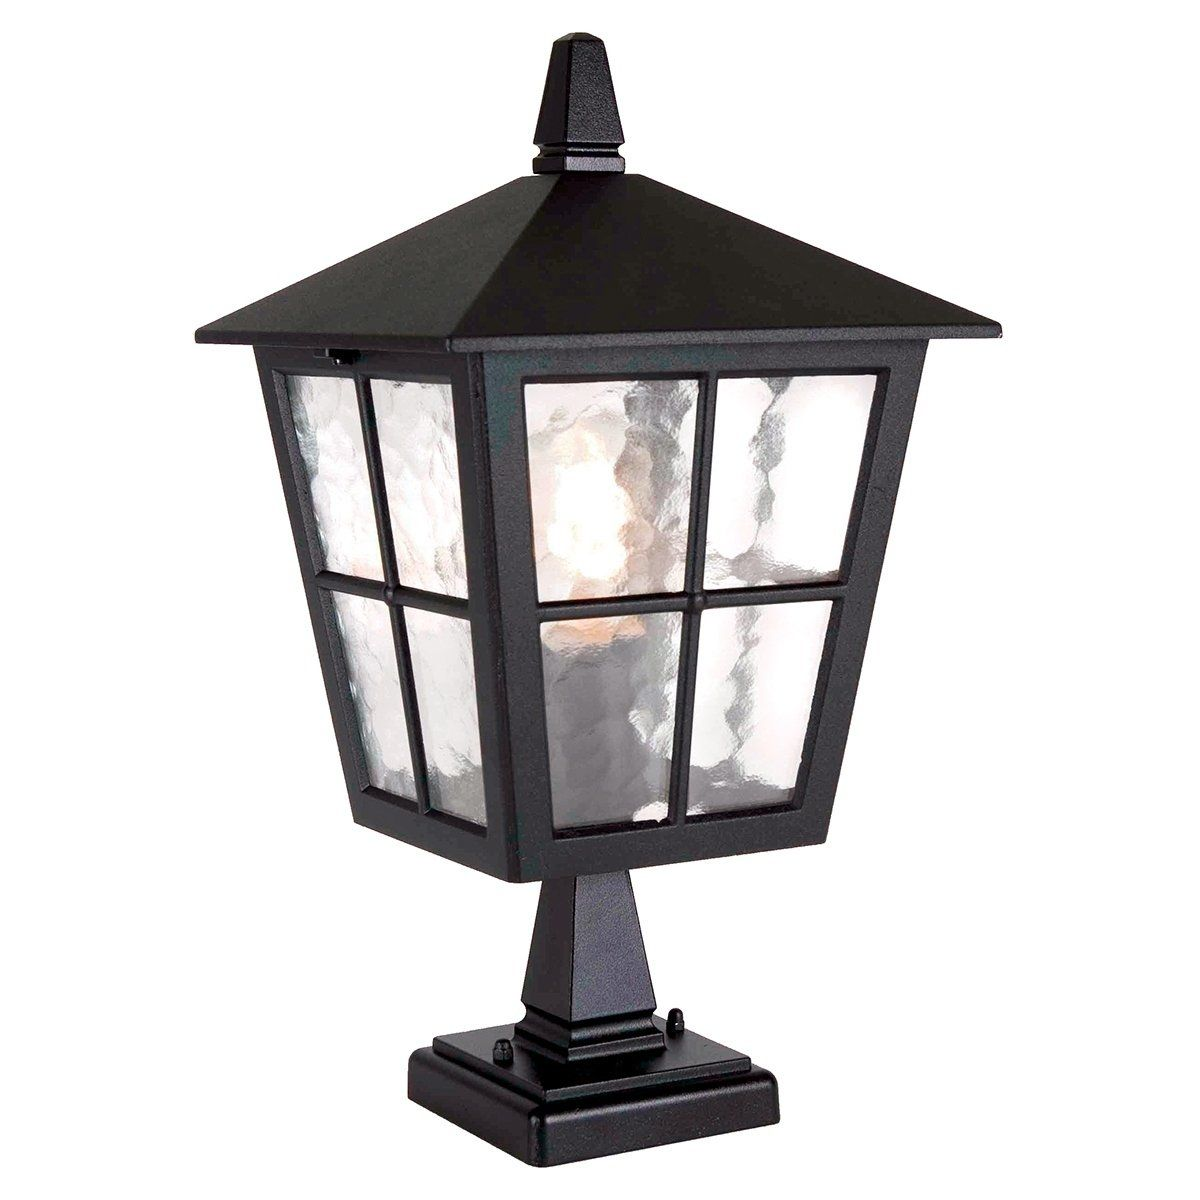 Online Shopping Bedding Furniture Electronics Jewelry Clothing More Lantern Post Lamp Post Lights Light Fittings